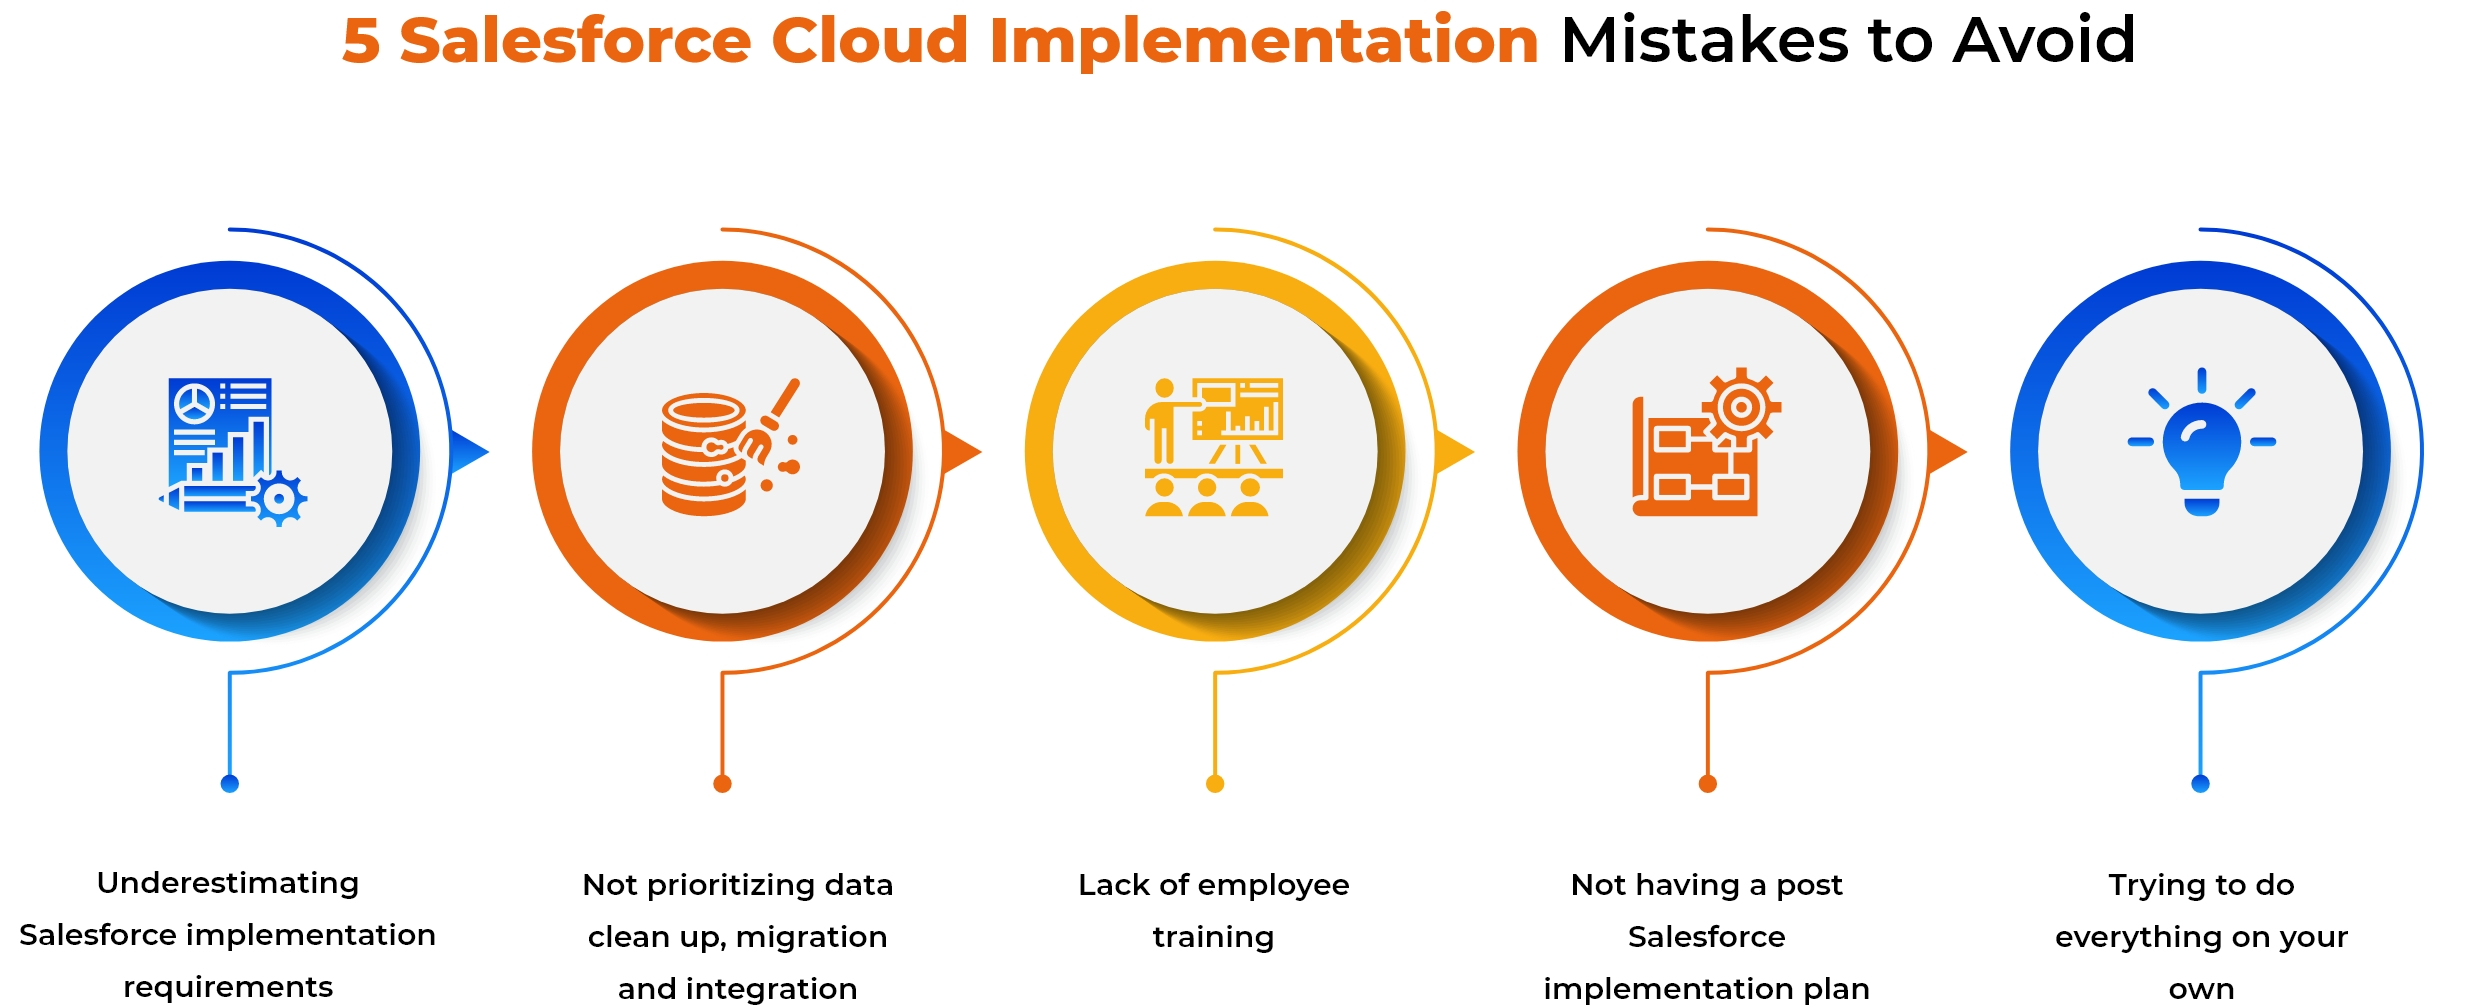 Cloud Implementation Mistakes to Avoid Infographic